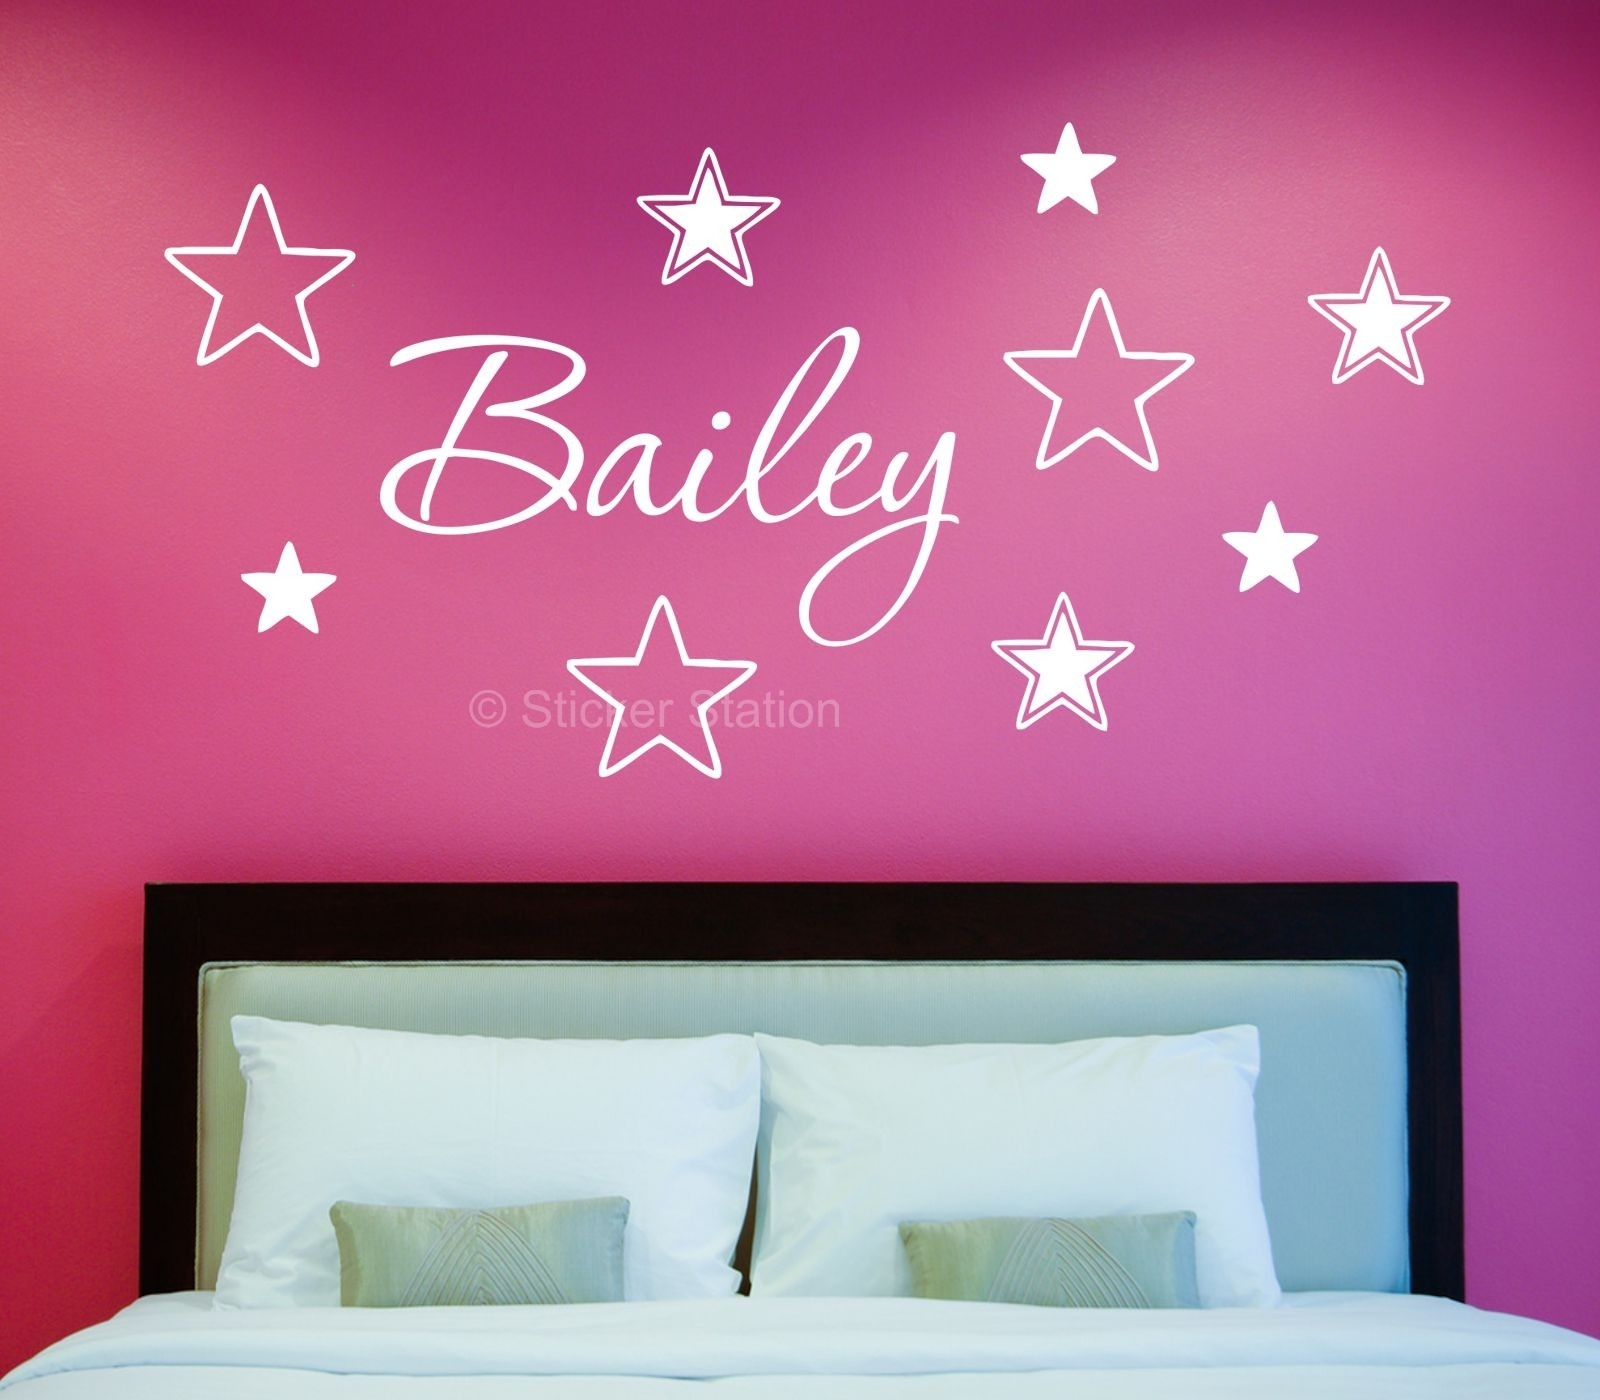 Name In Stars Personalised Wall Art Sticker – Sticker Station Within Most Recently Released Name Wall Art (View 12 of 20)